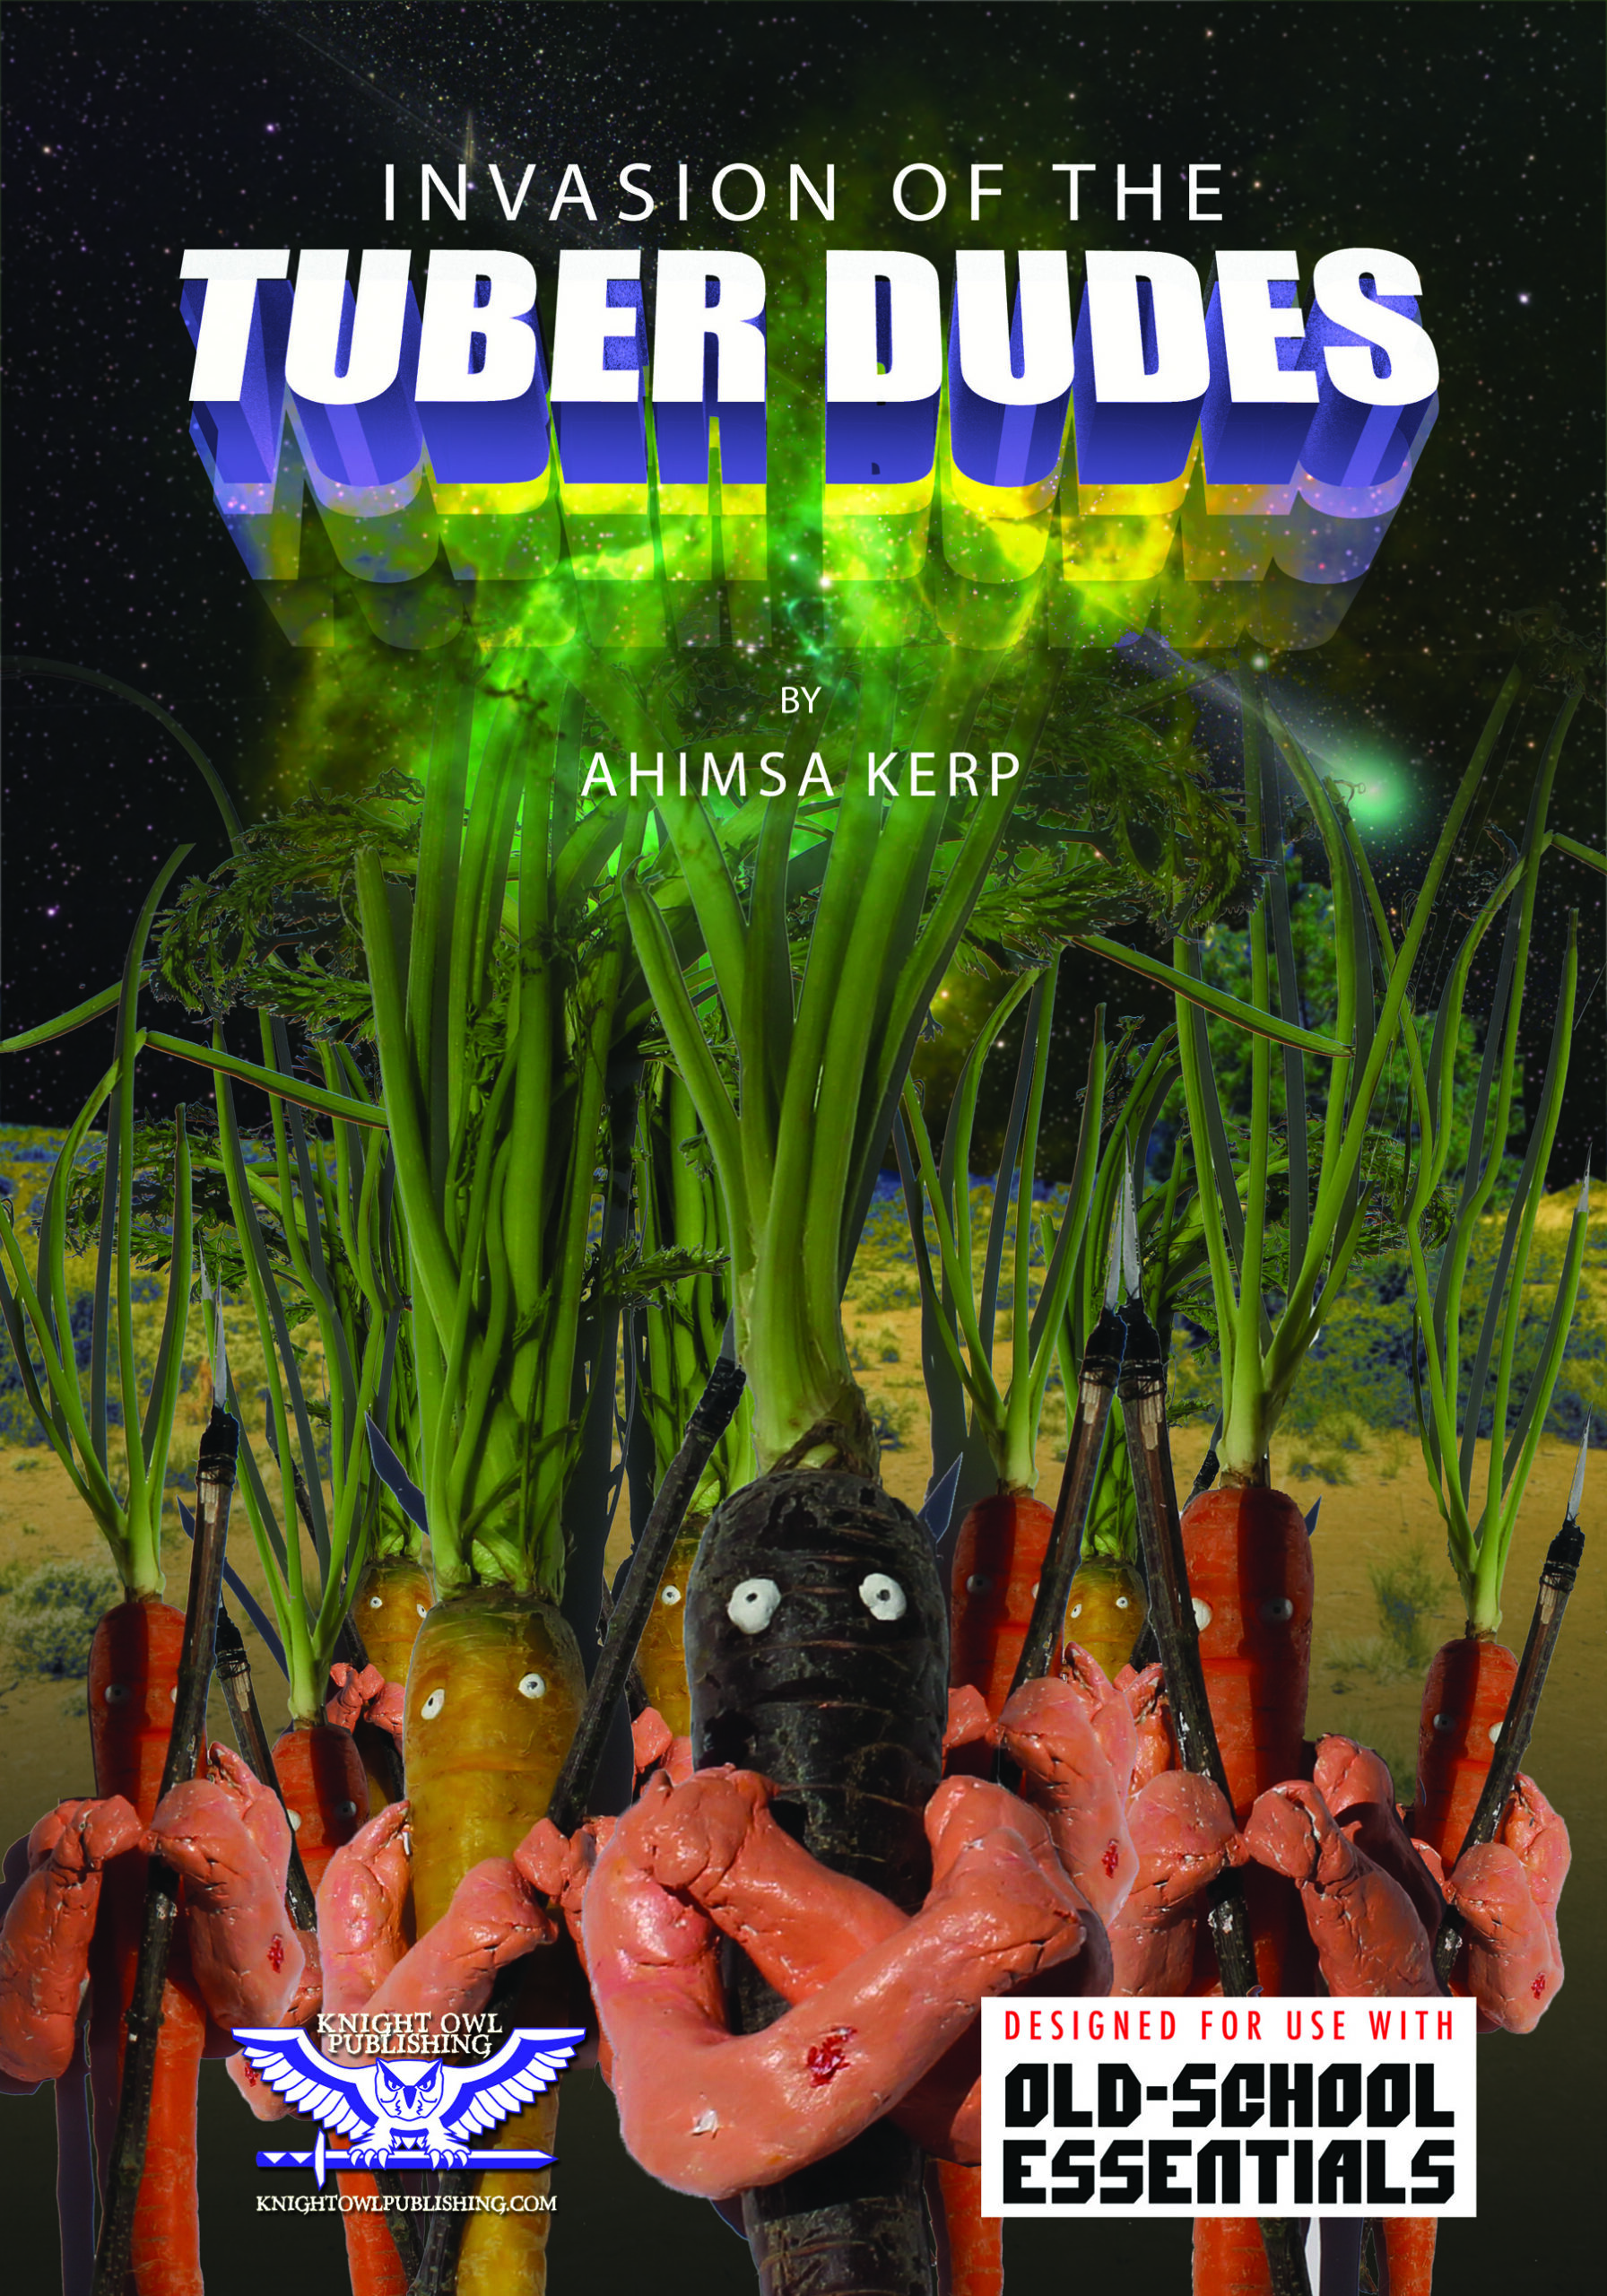 Invasion of the Tuber Dudes